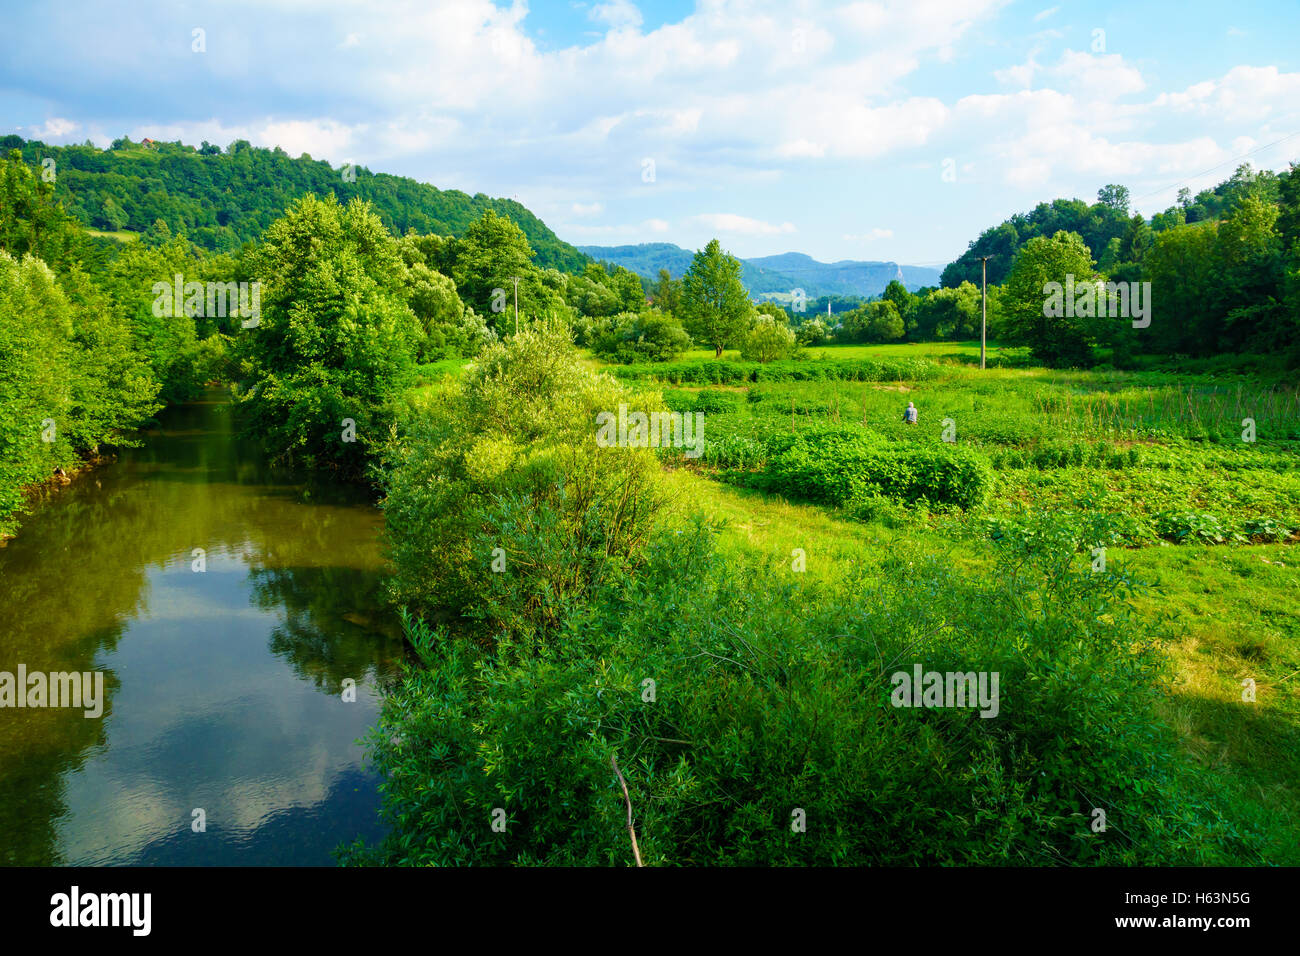 View and countryside, with a farmer, along the M18 road in the Republika Srpska, Bosnia and Herzegovina - Stock Image